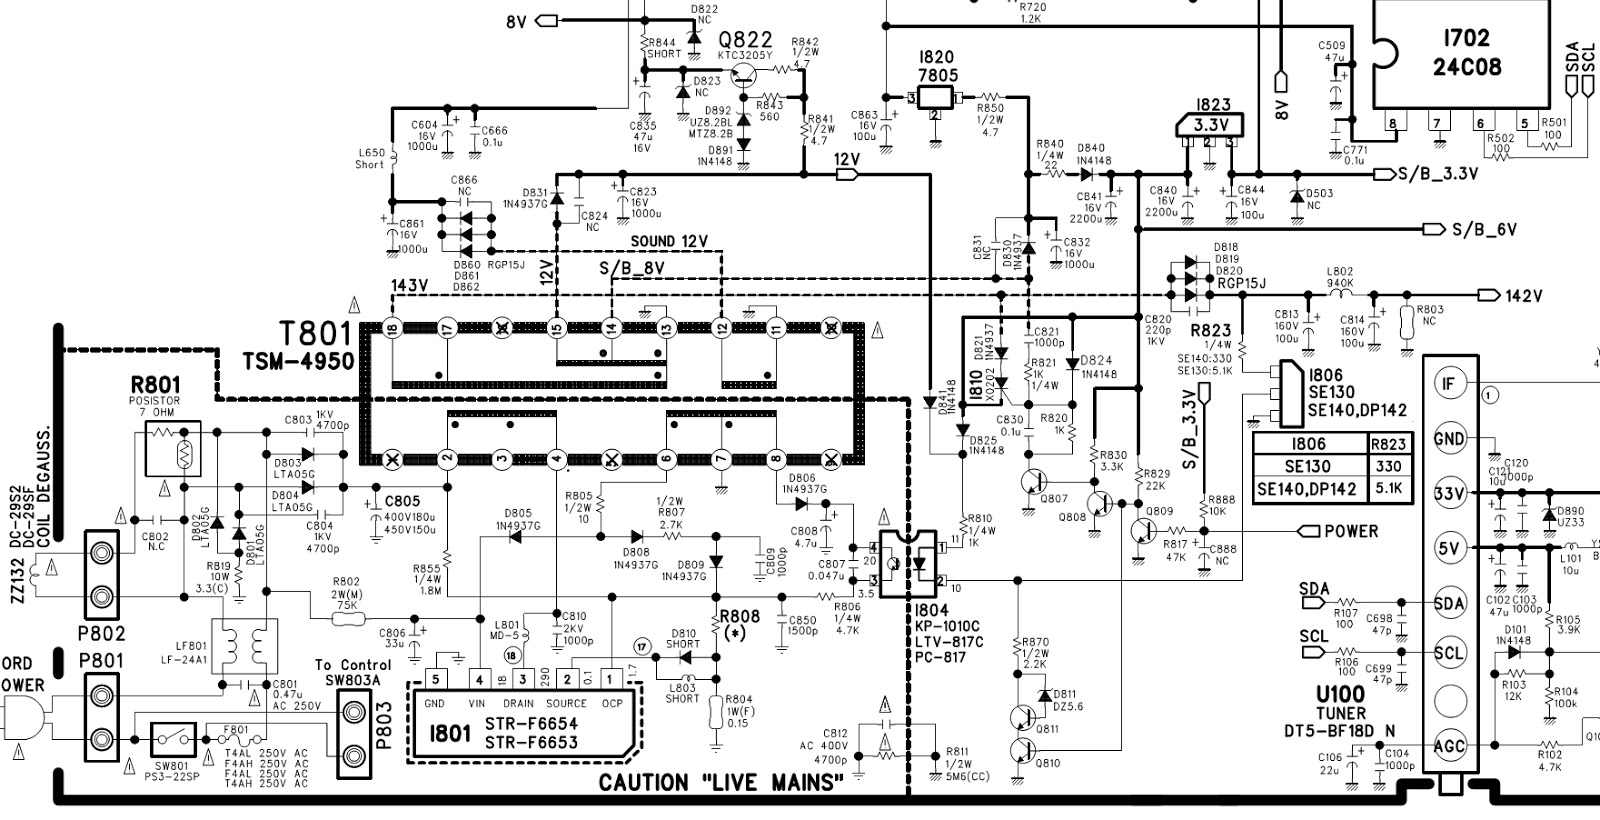 electrical engineering diagram key html imageresizertool com electrical engineering plan of study #5